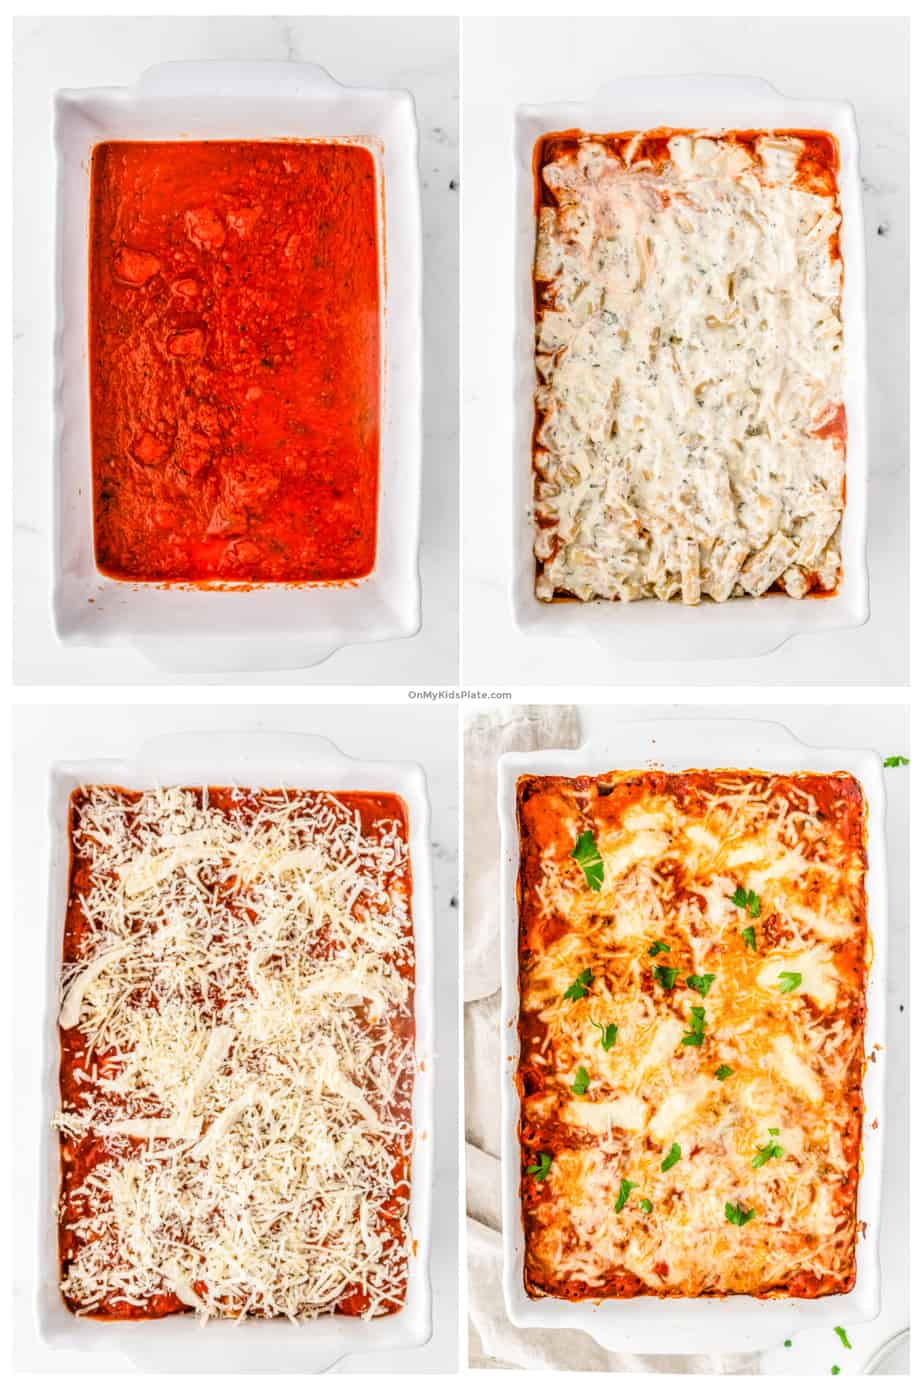 Step by step photos layer tomato sauce, pasta and cheese to make baked ziti.